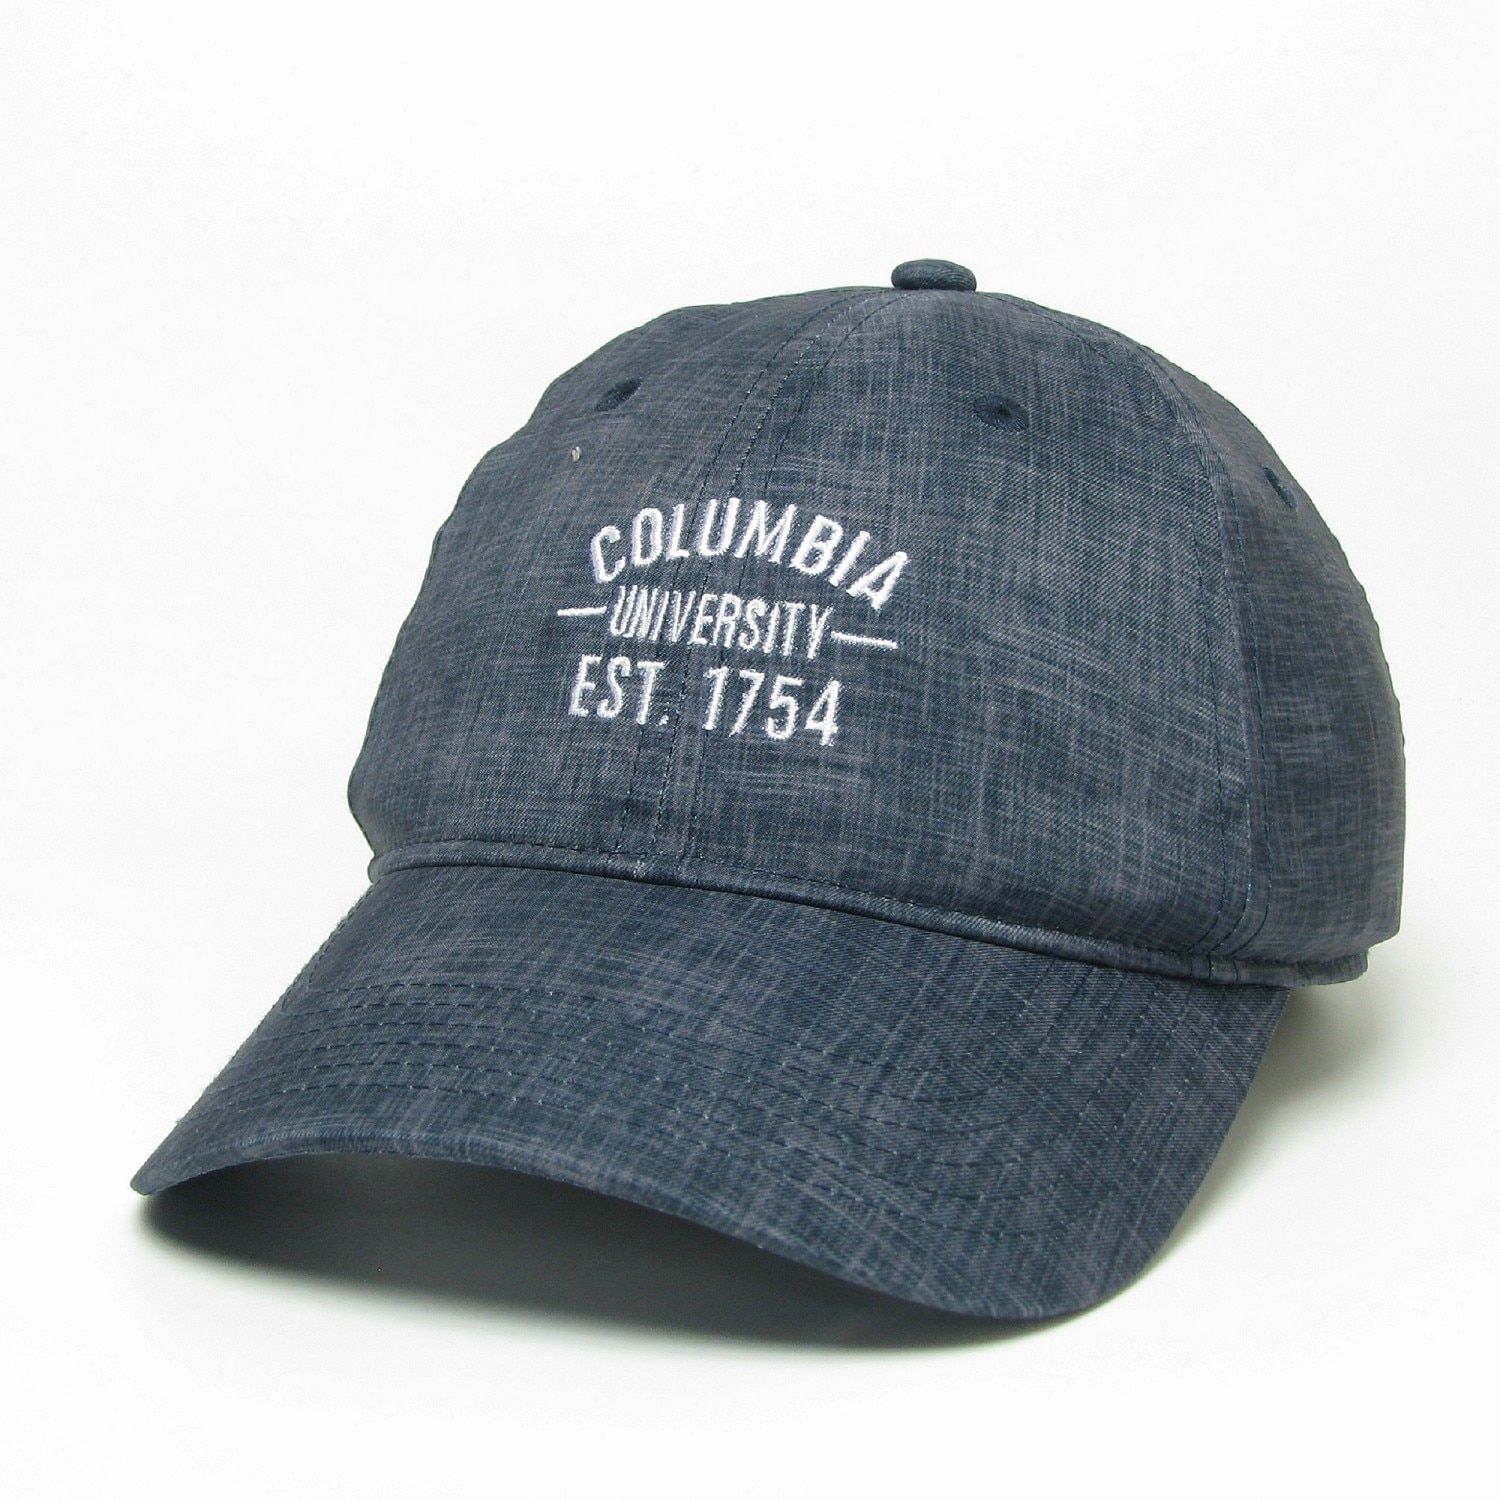 Columbia University Legacy Reclaim Recycled Unstructured Adjustable Hat